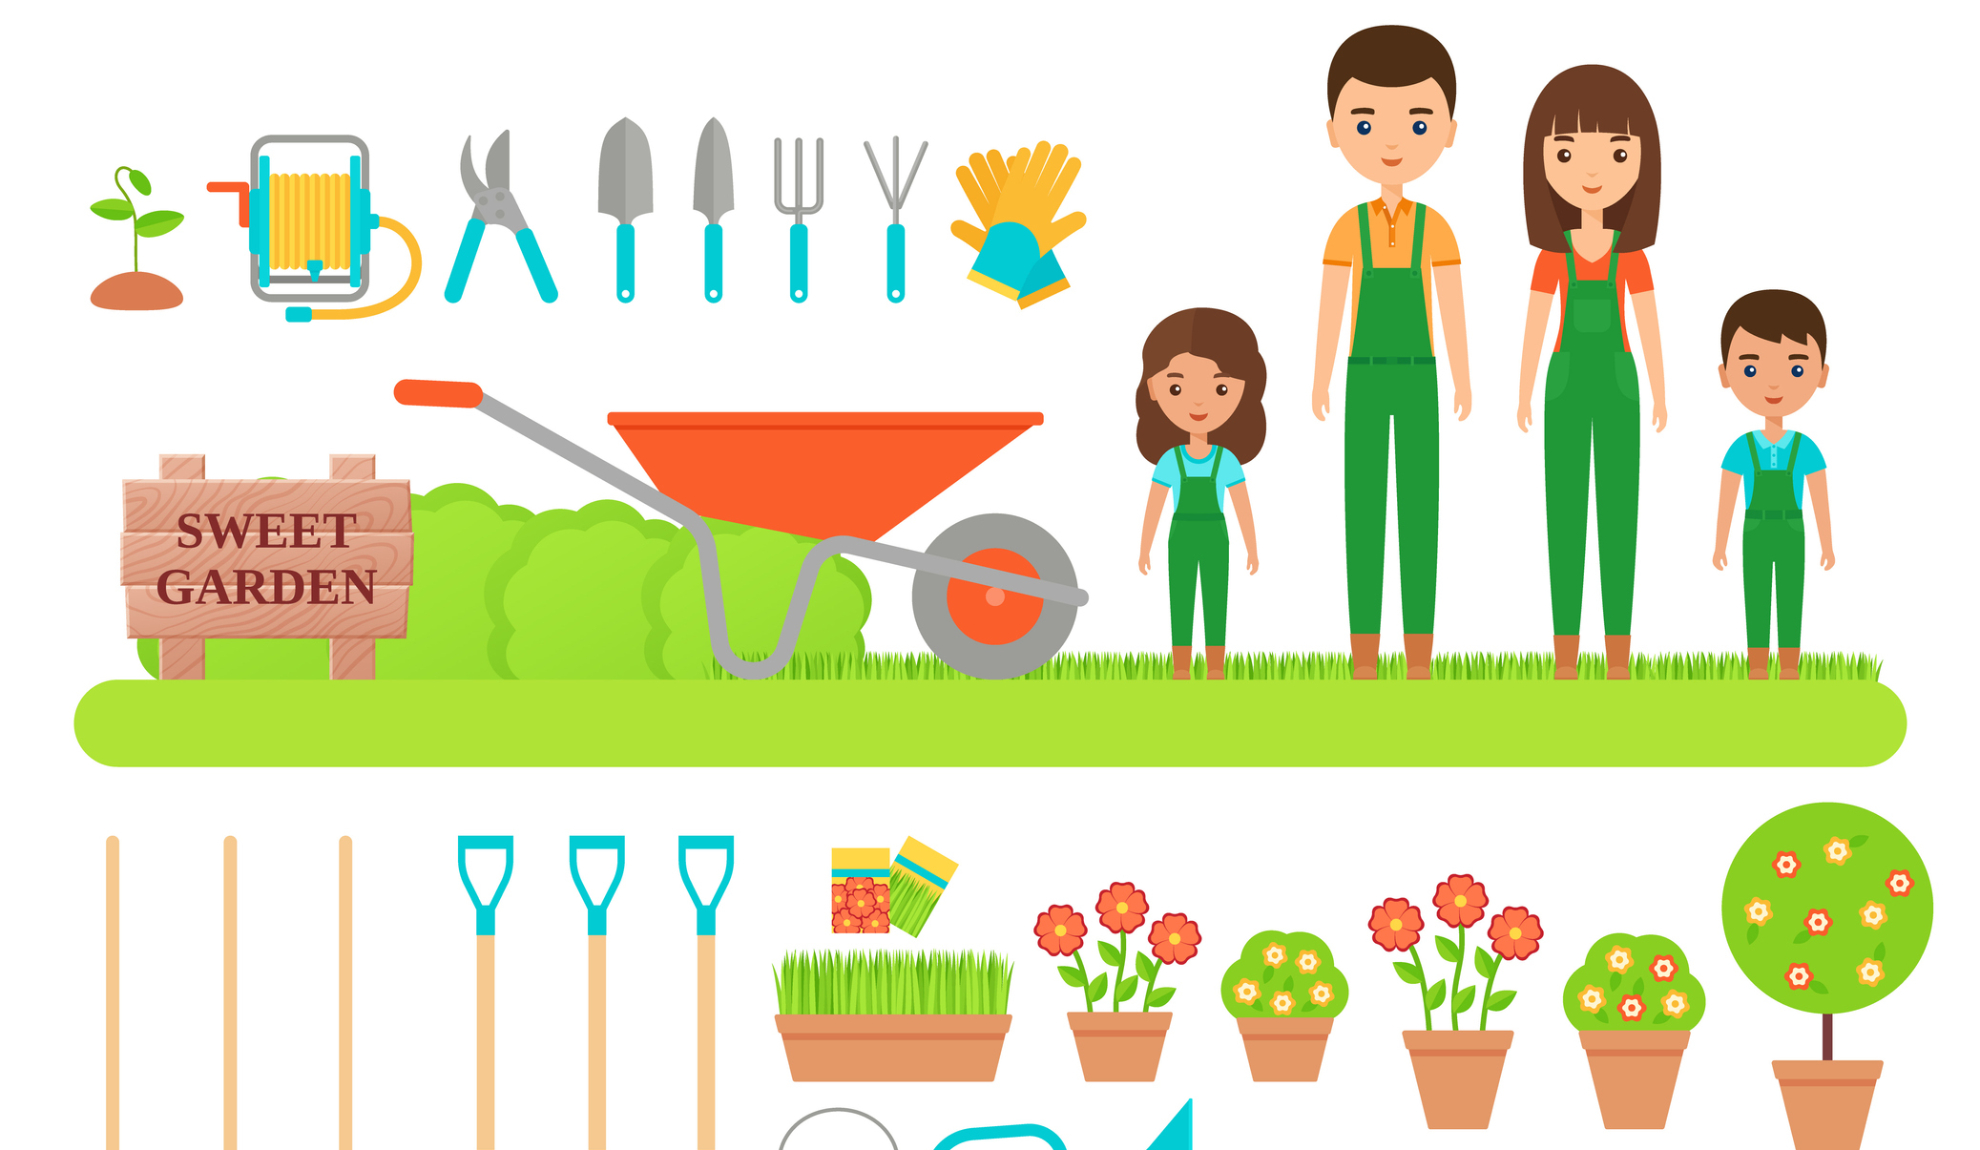 The Goodness of Gardening